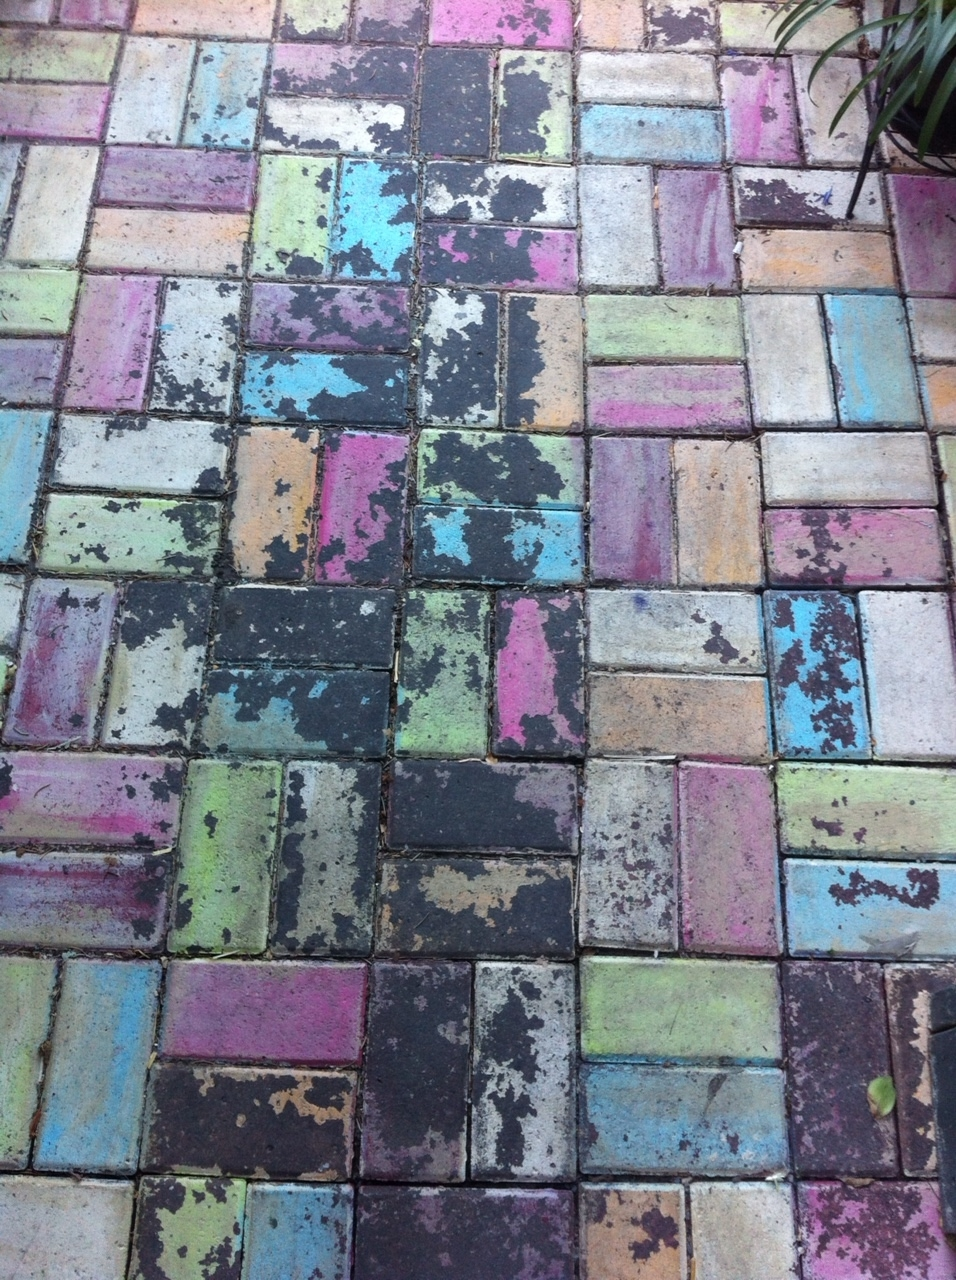 We both loved the colourful patina on these bricks.